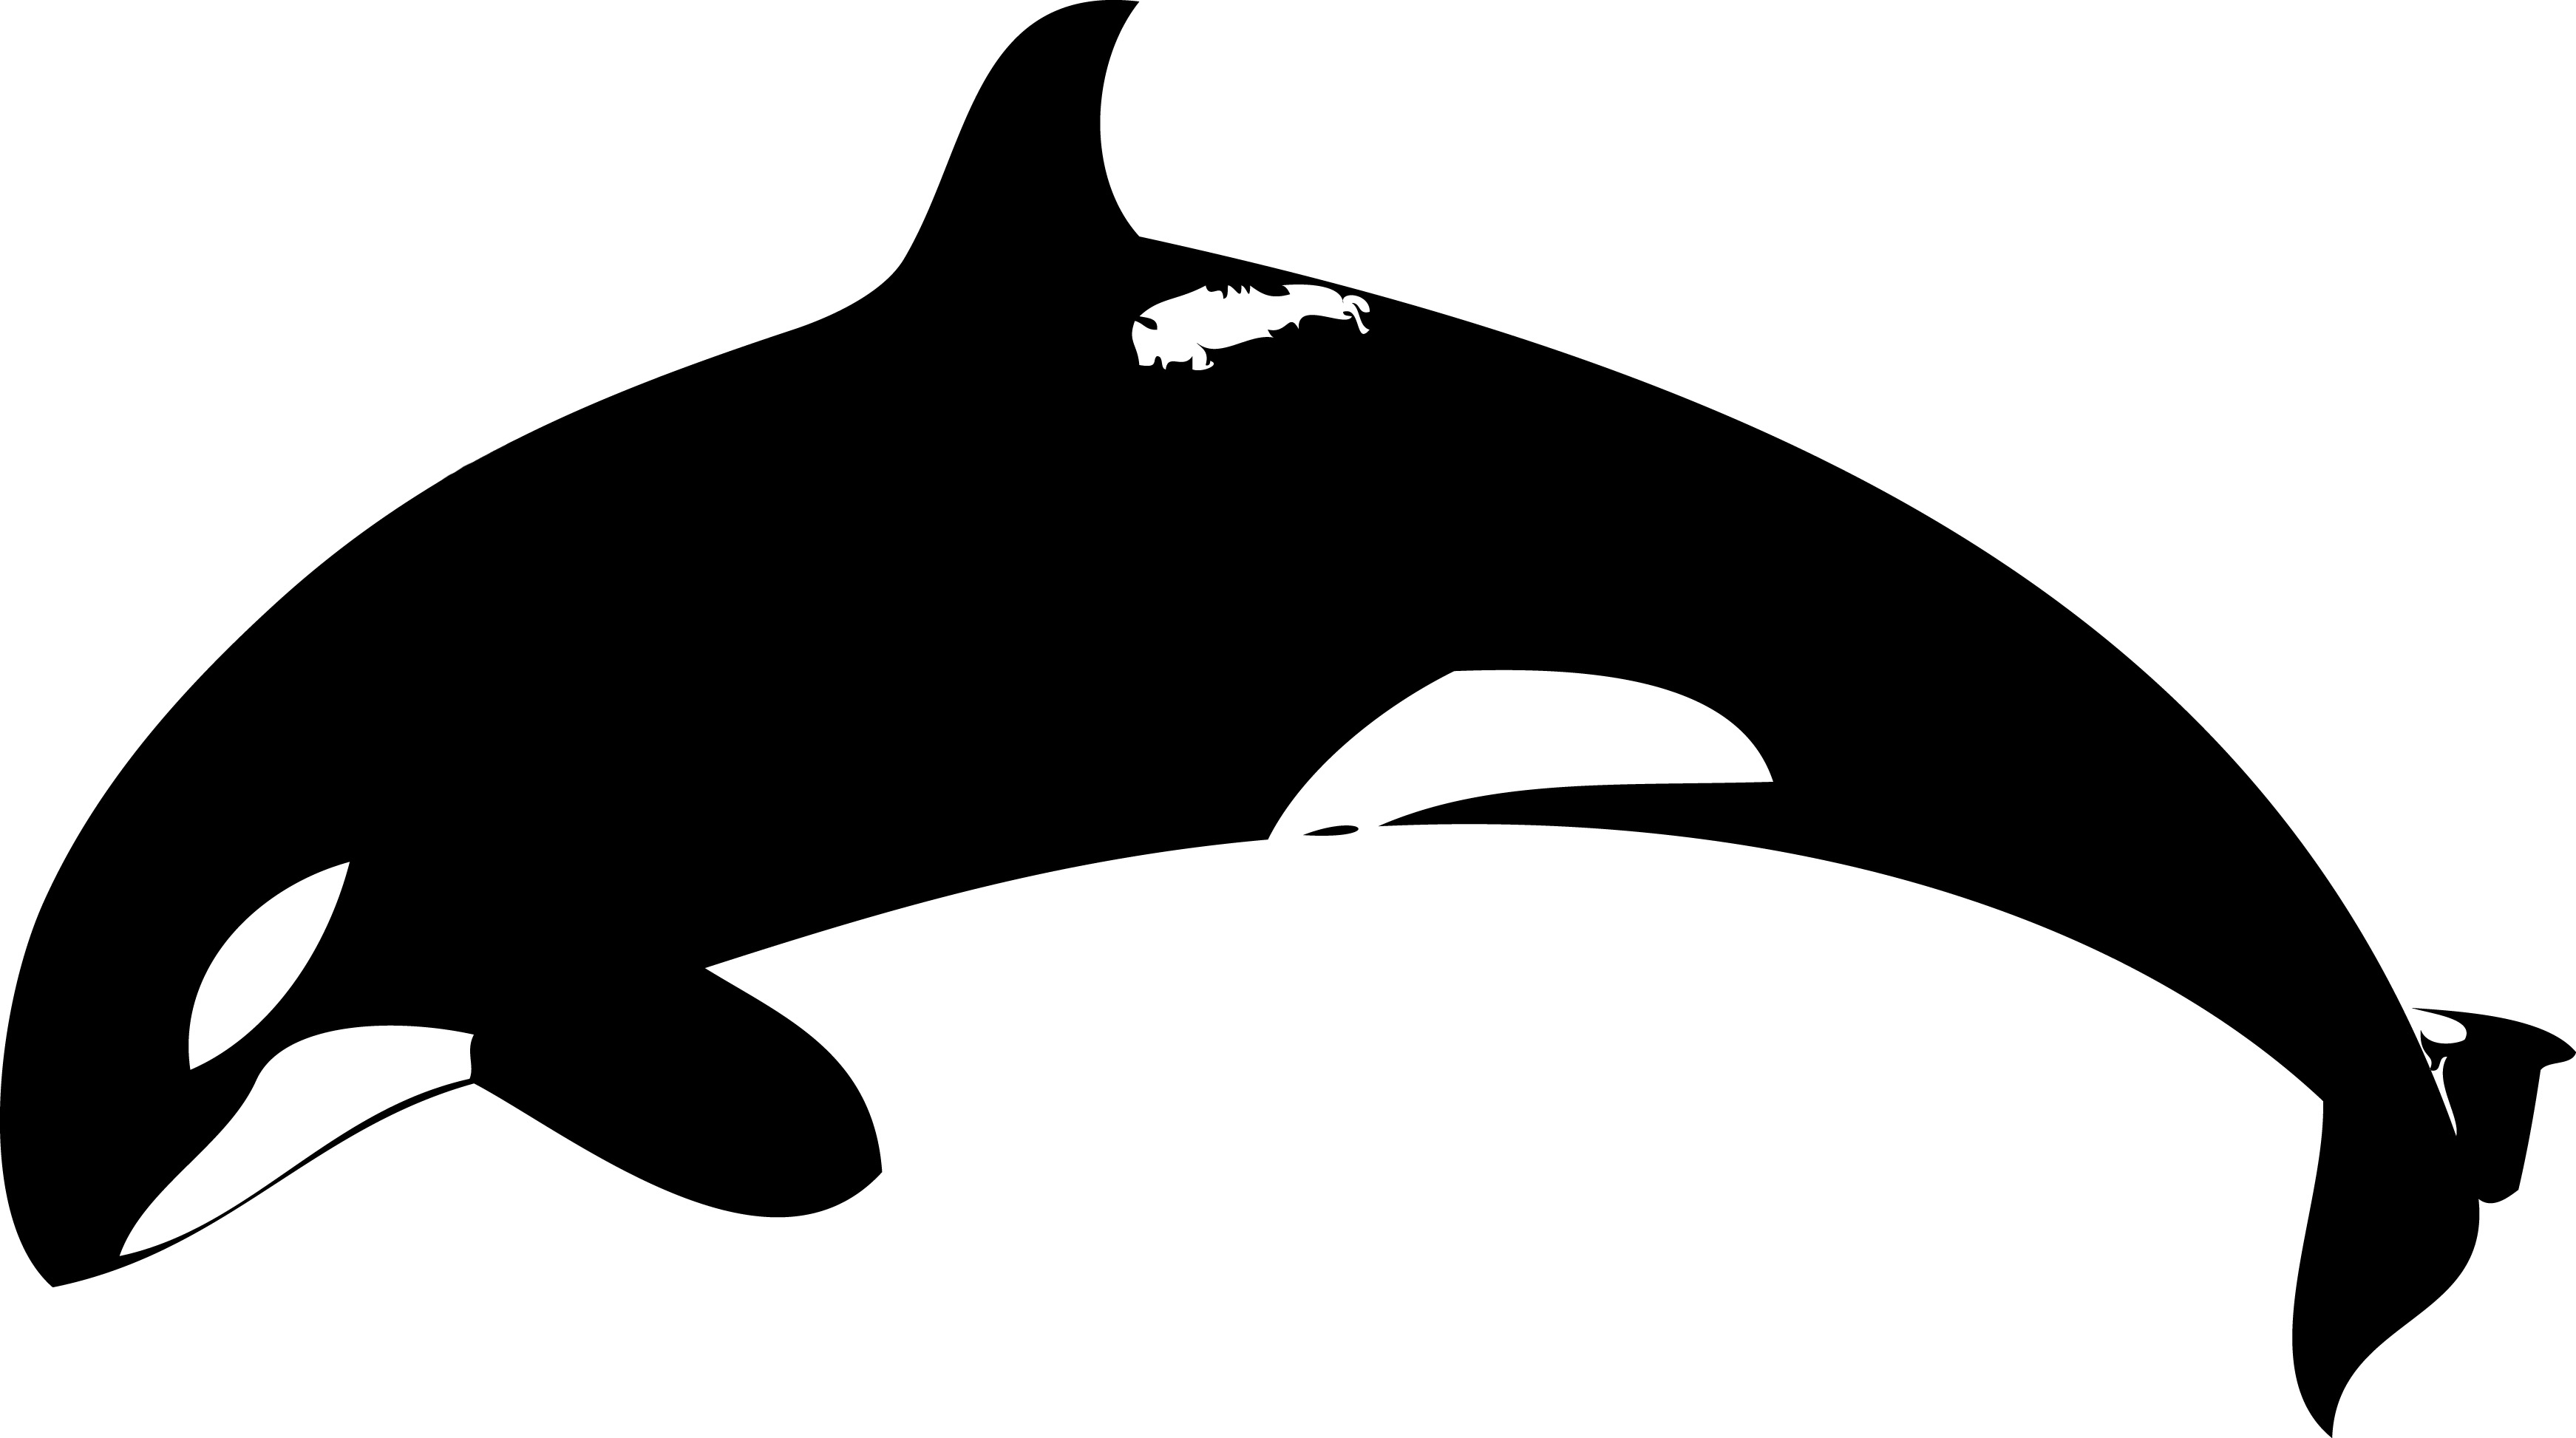 Orca Whale Clipart.